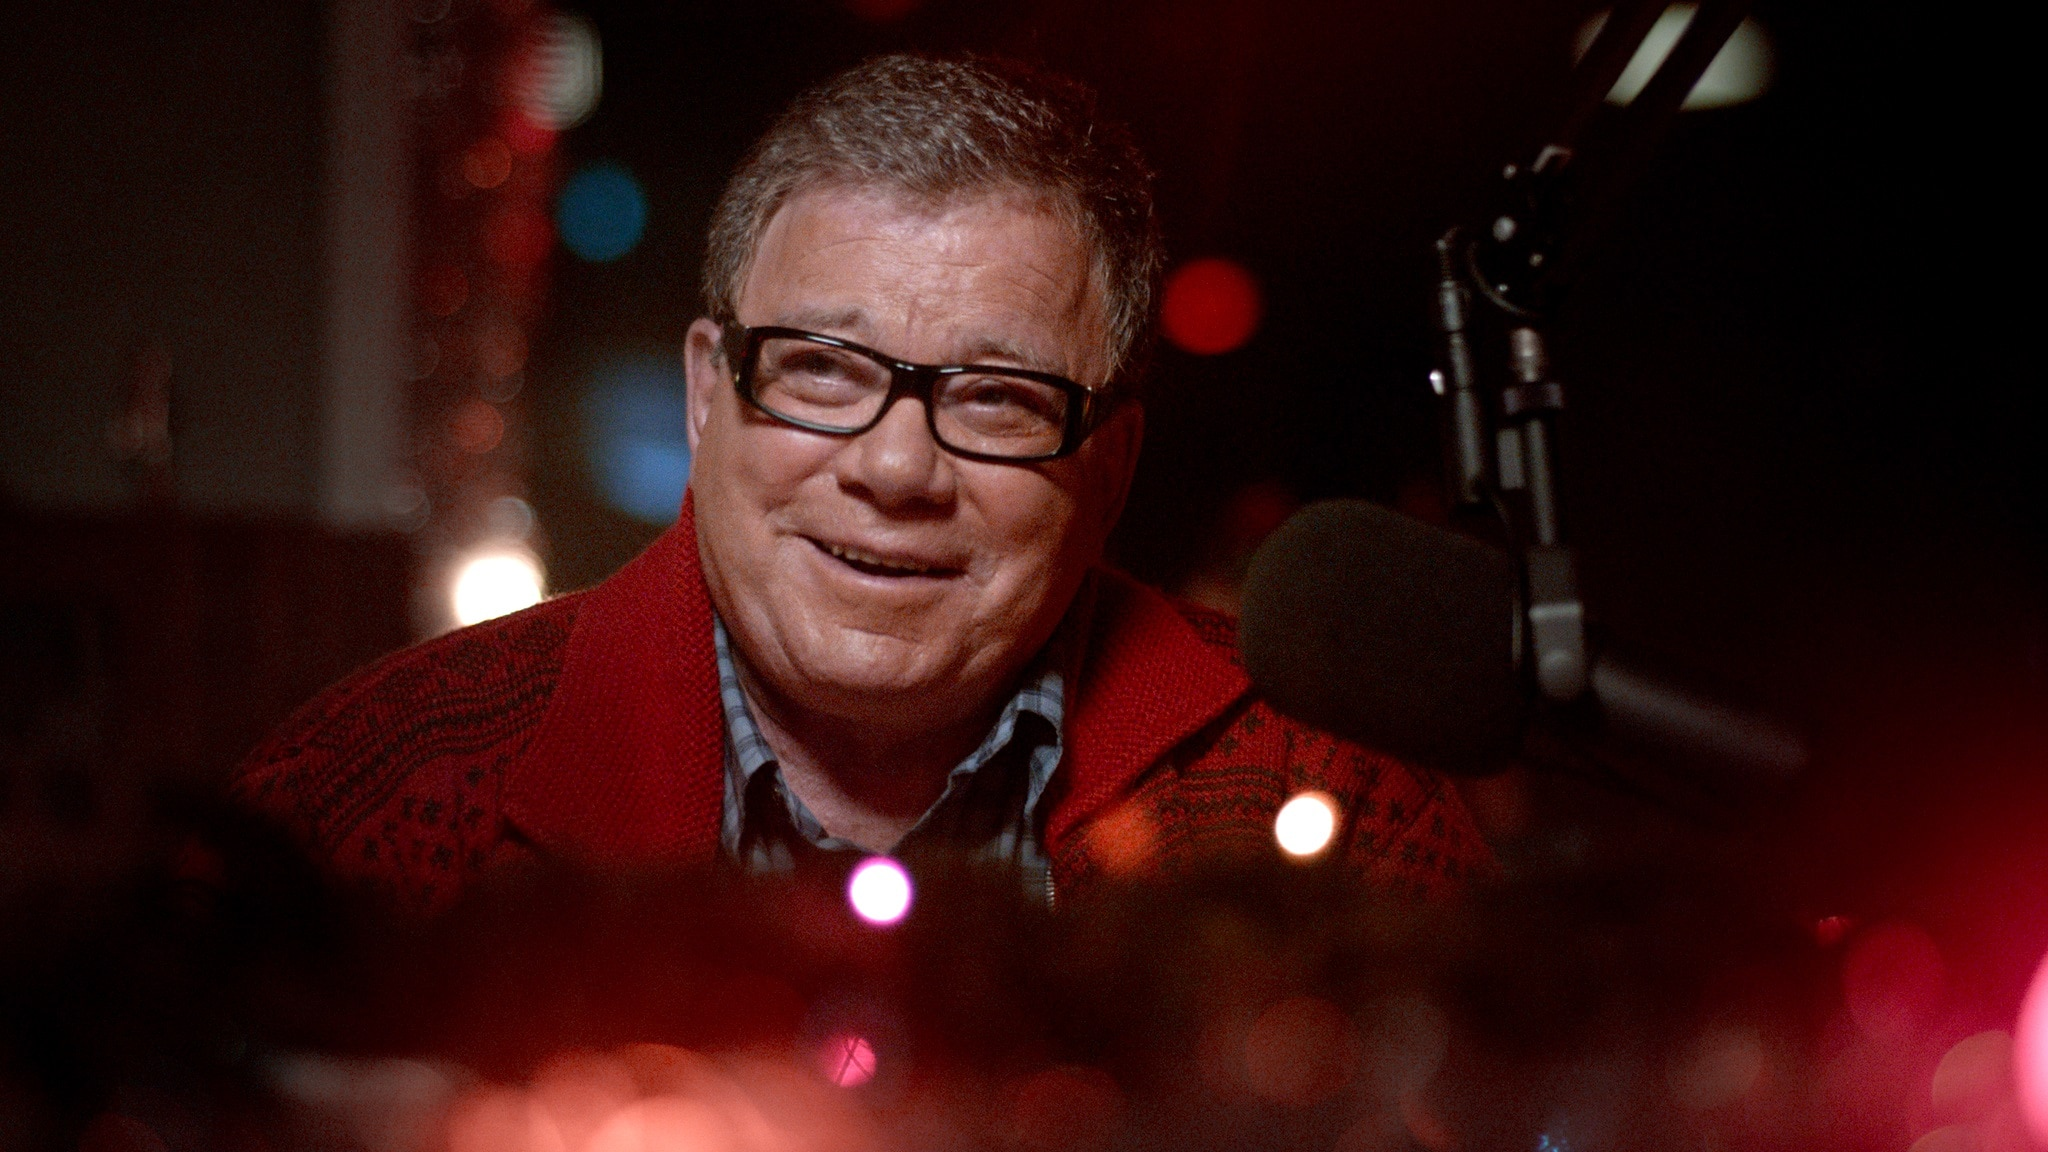 Shatner10 - Get Festive With Our UK-Exclusive A Christmas Horror Story Gallery!